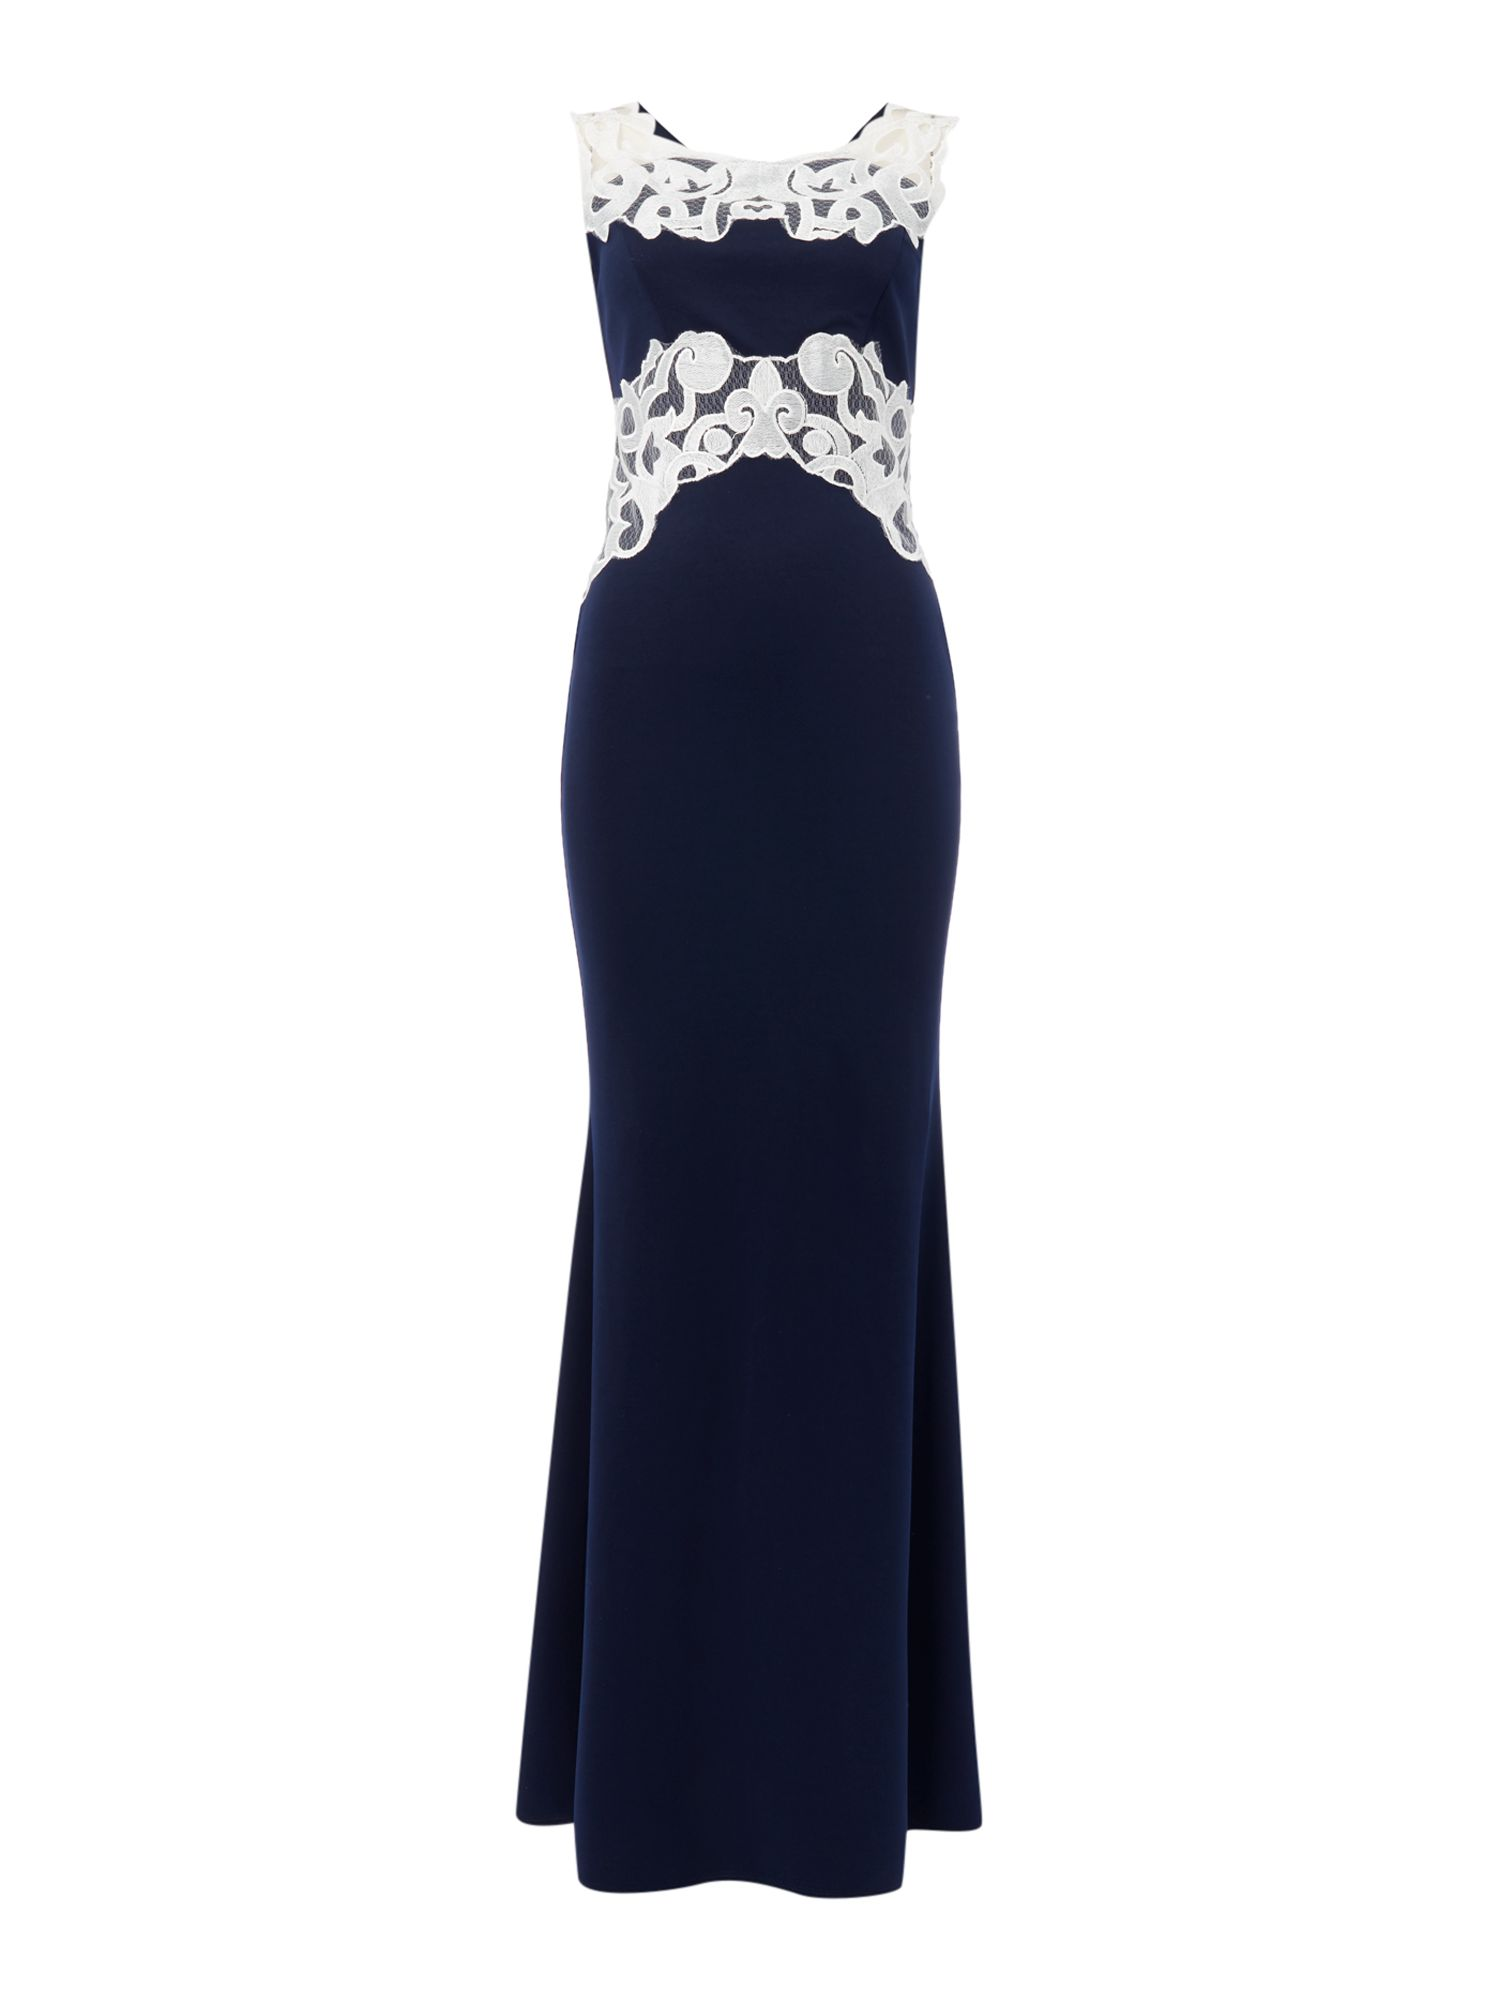 Jessica Wright Sleeveless Contrast Applique Maxi Dress, Blue